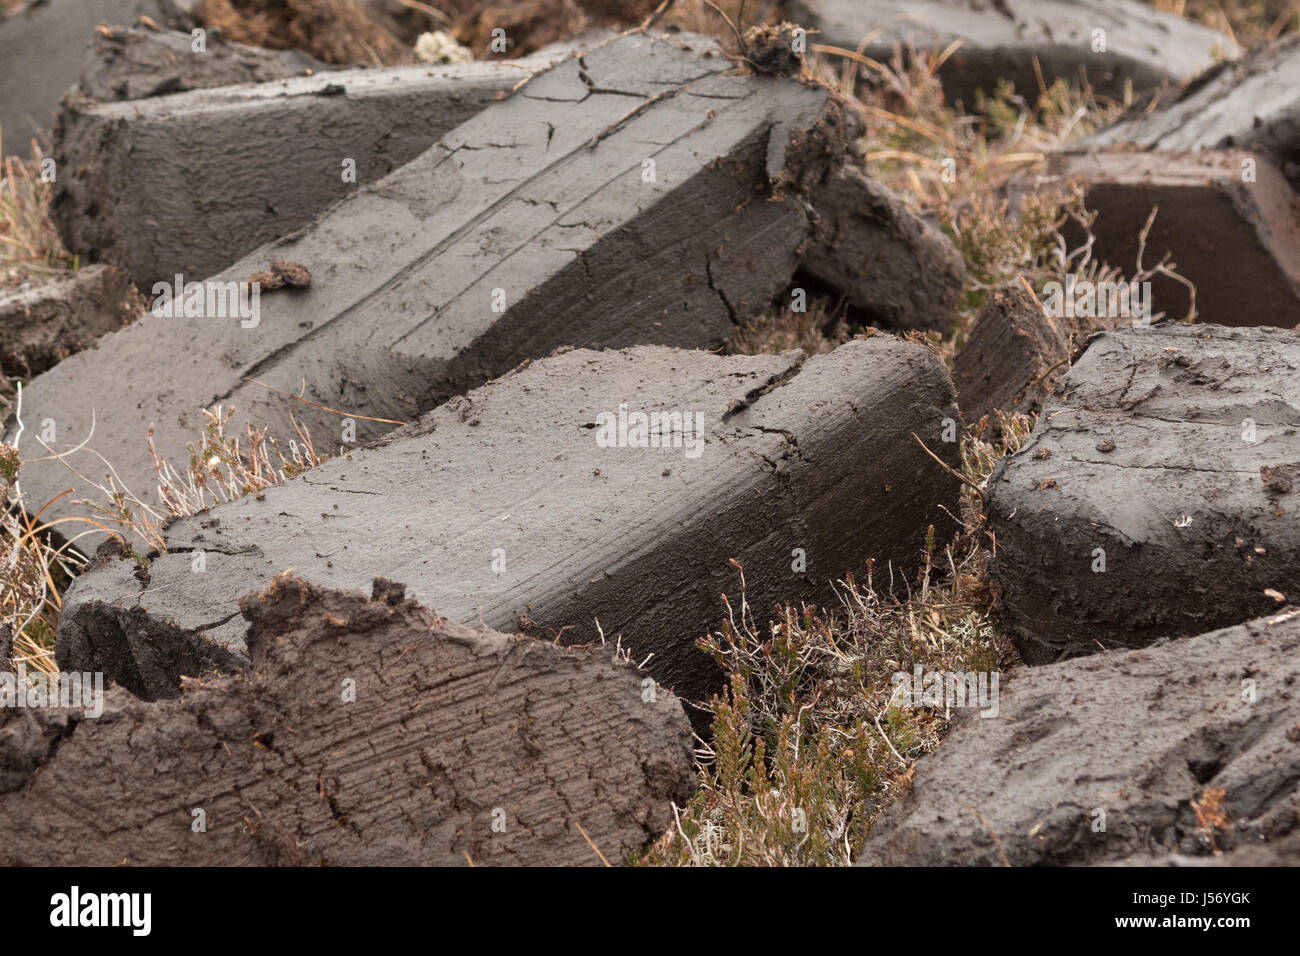 Peat freshly cut by crofter, drying to be used for fuel, Wester Ross, Scotland, UK - Stock Image